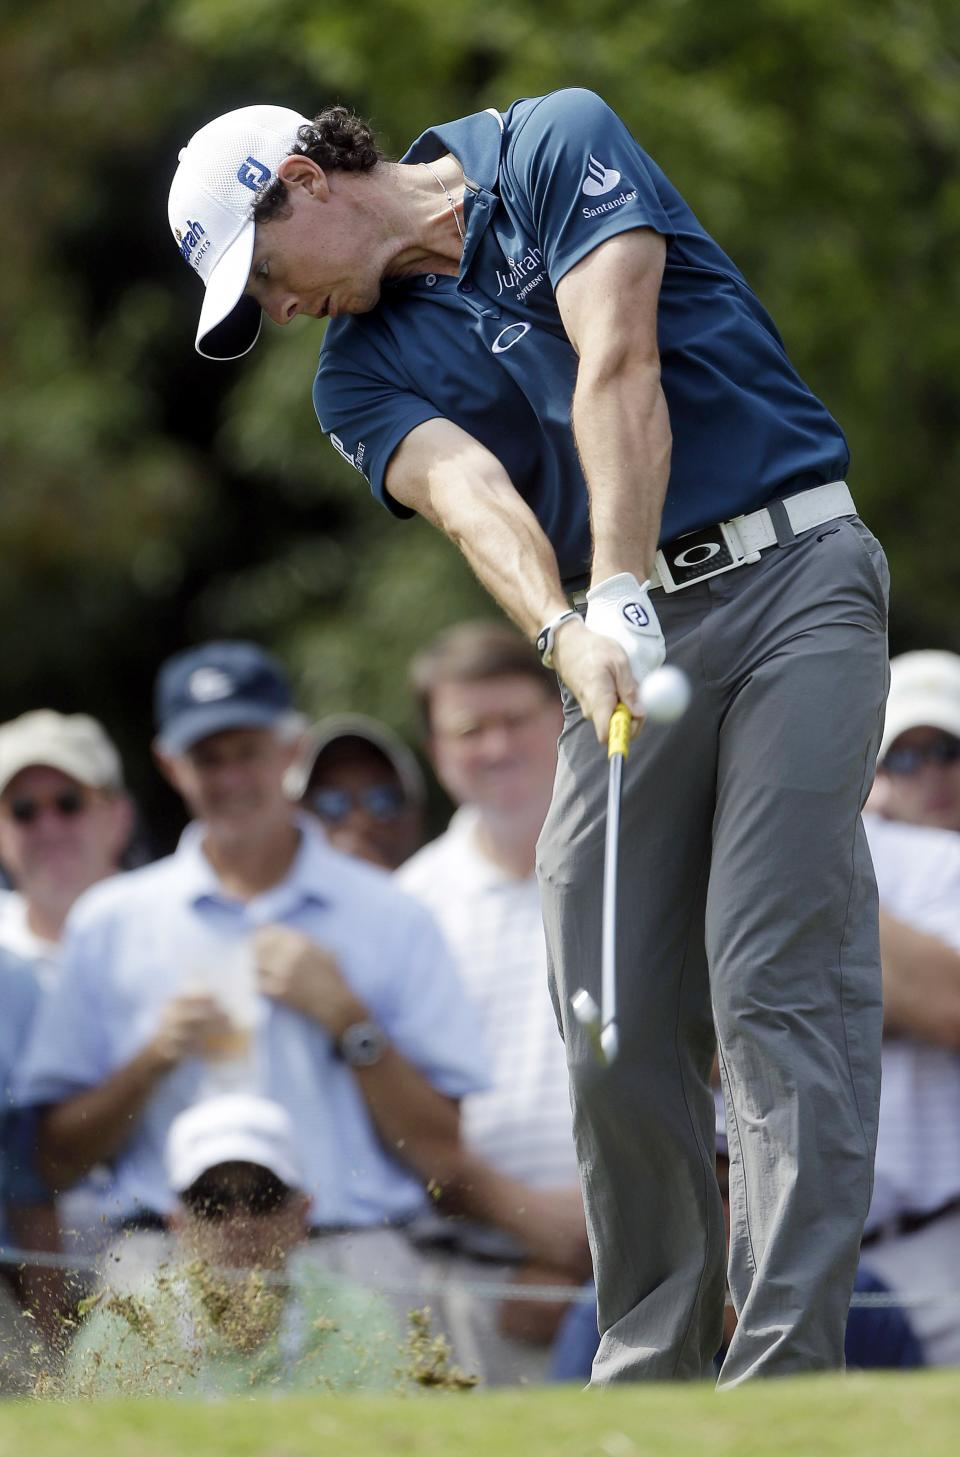 Rory McIlroy, of Northern Ireland, tees off on the second hole during the first round of the Tour Championship golf tournament in Atlanta on Thursday, Sept. 20, 2012.  (AP Photo/John Bazemore)